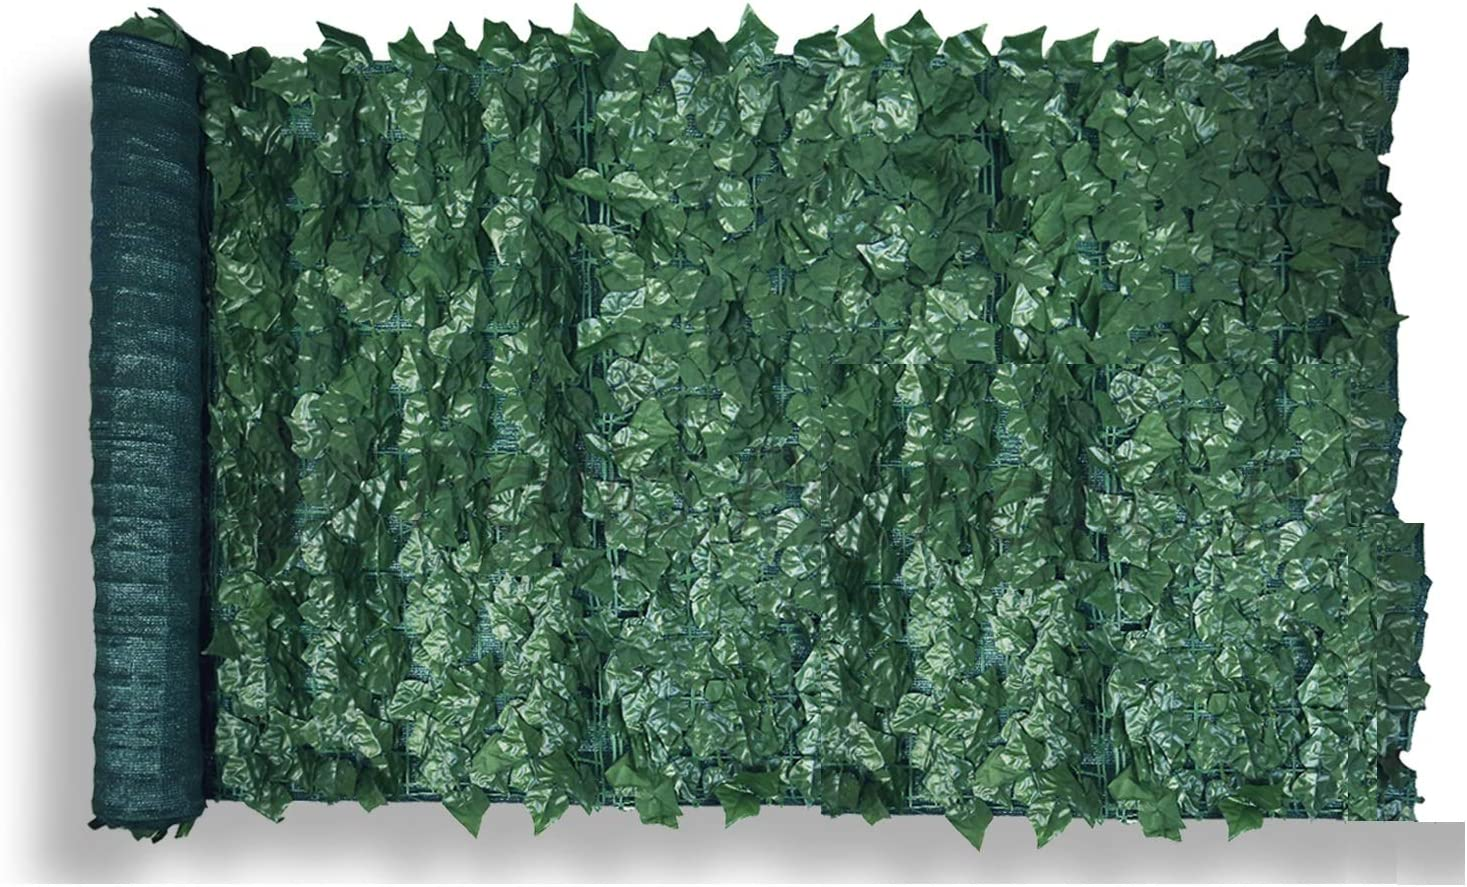 Patio Paradise 6' x 14' Faux Ivy Privacy Fence Screen with Mesh Back-Artificial Leaf Vine Hedge Outdoor Decor-Garden Backyard Decoration Panels Fence Cover